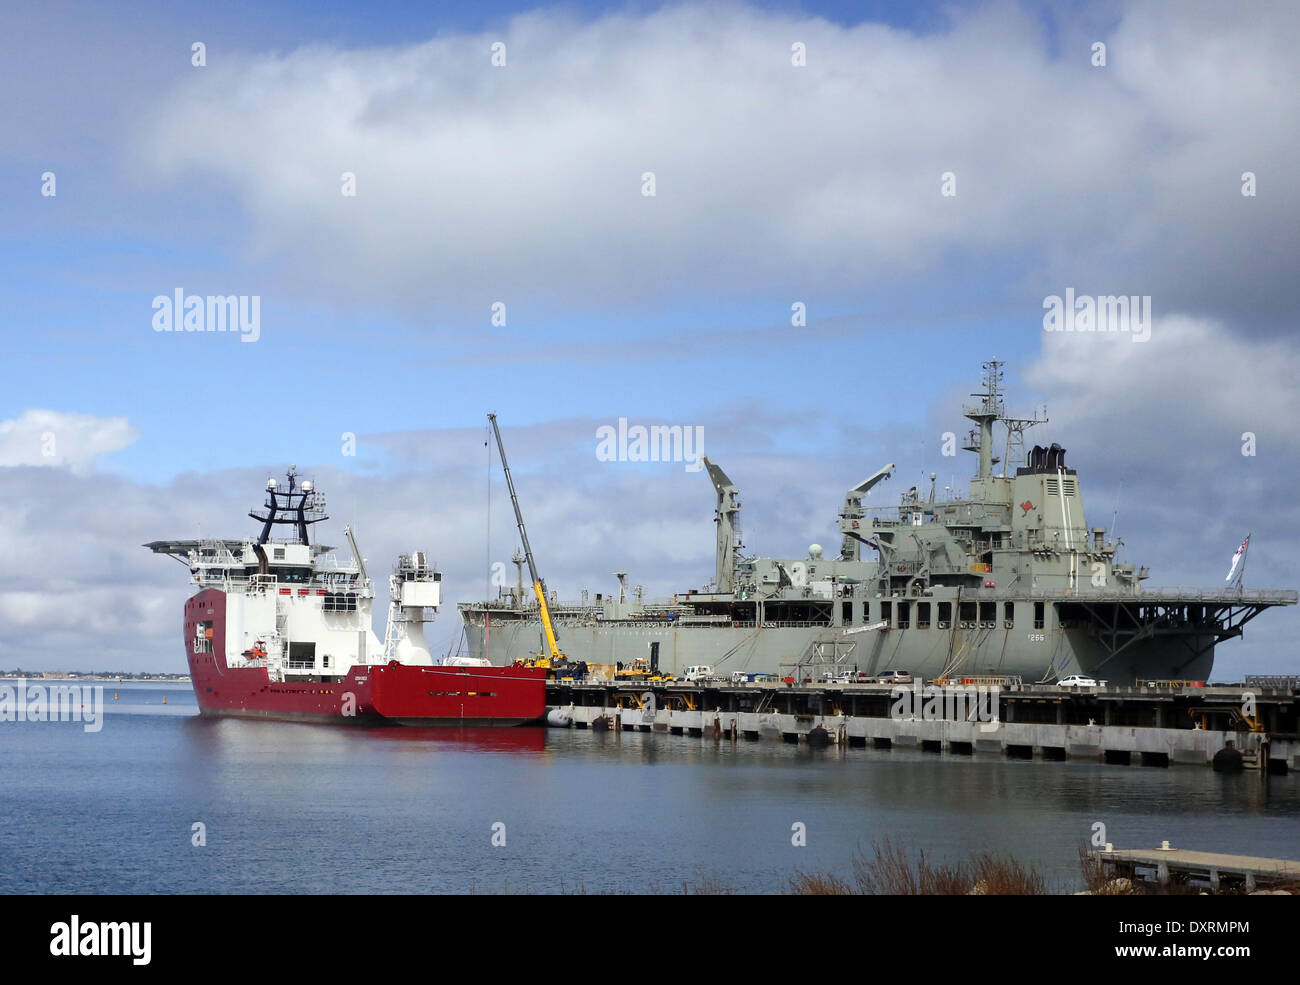 Perth, Australia . 30th Mar, 2014. Australian Defence Vessel Ocean Shield is loaded with supplies and equipments before heading for a tasked area to locate the black box pinger of the missing Malaysia Airlines Flight MH370, at HMAS Stirling naval base near Perth, Australia, March 30, 2014. Credit:  Xinhua/Alamy Live News - Stock Image